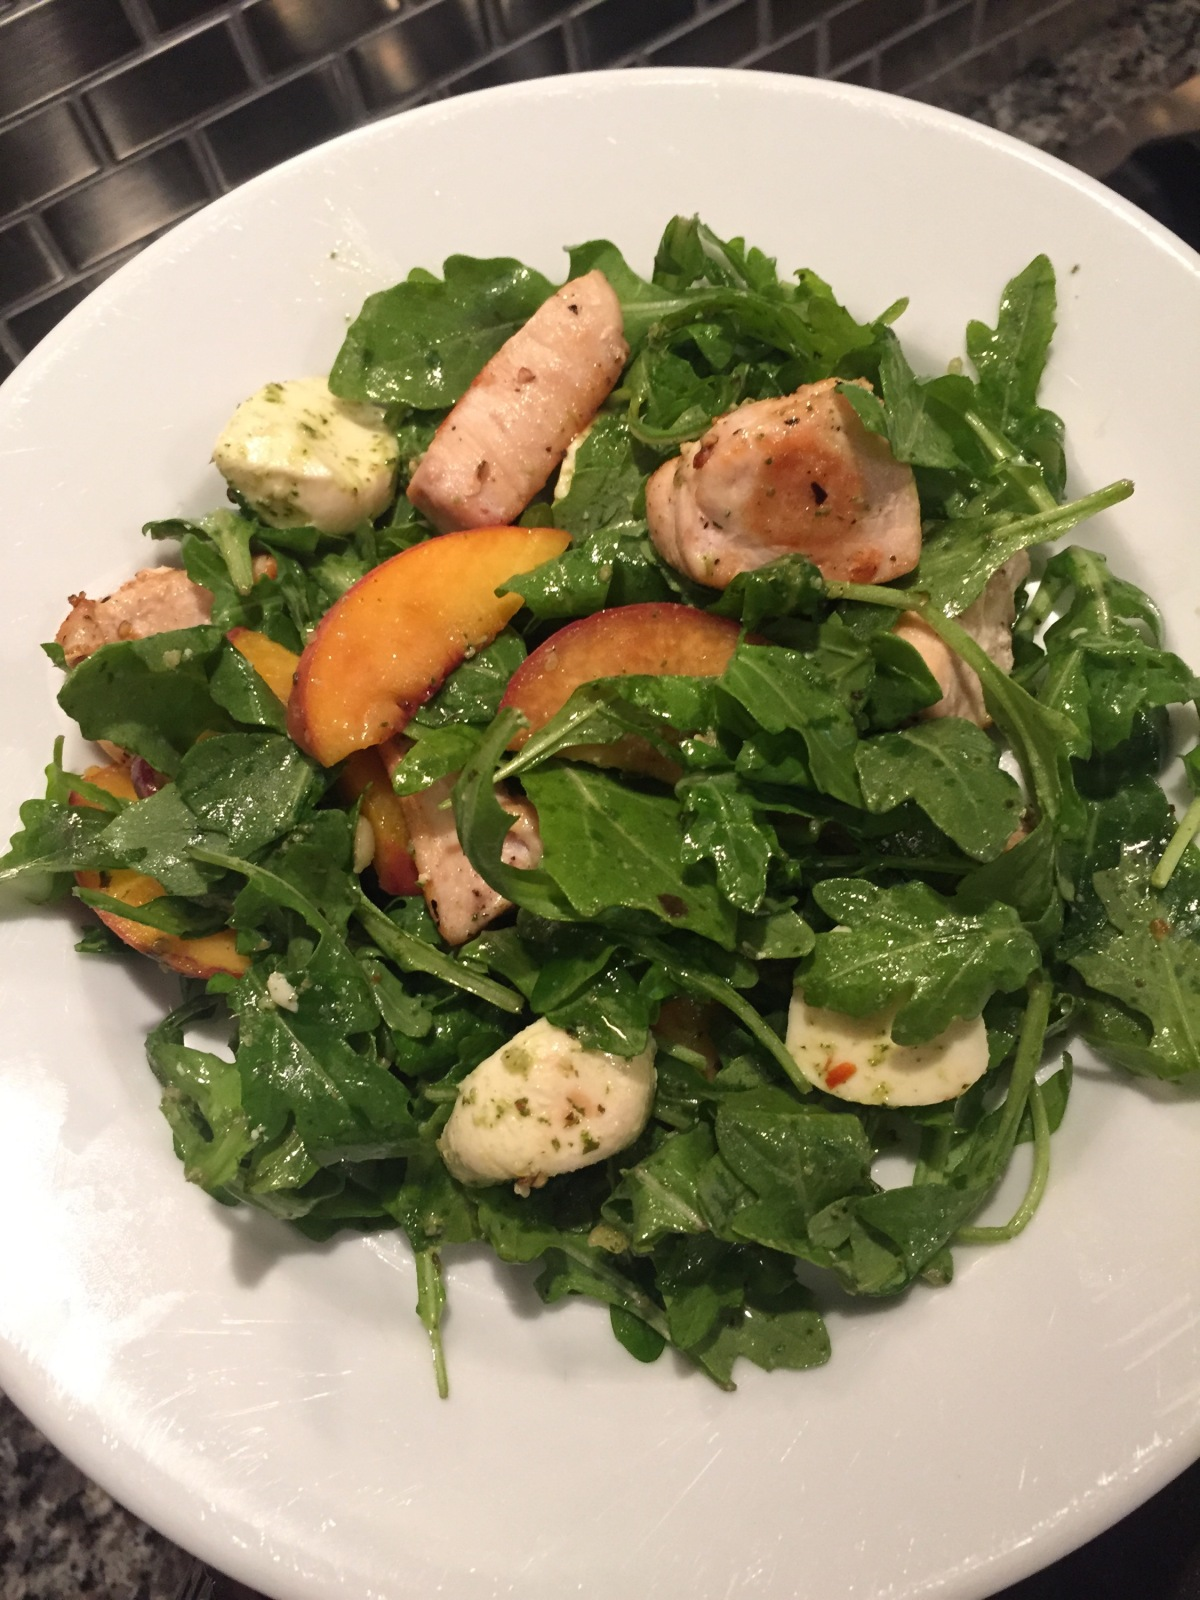 Feeling Peachy? Try a Peach Arugula Salad